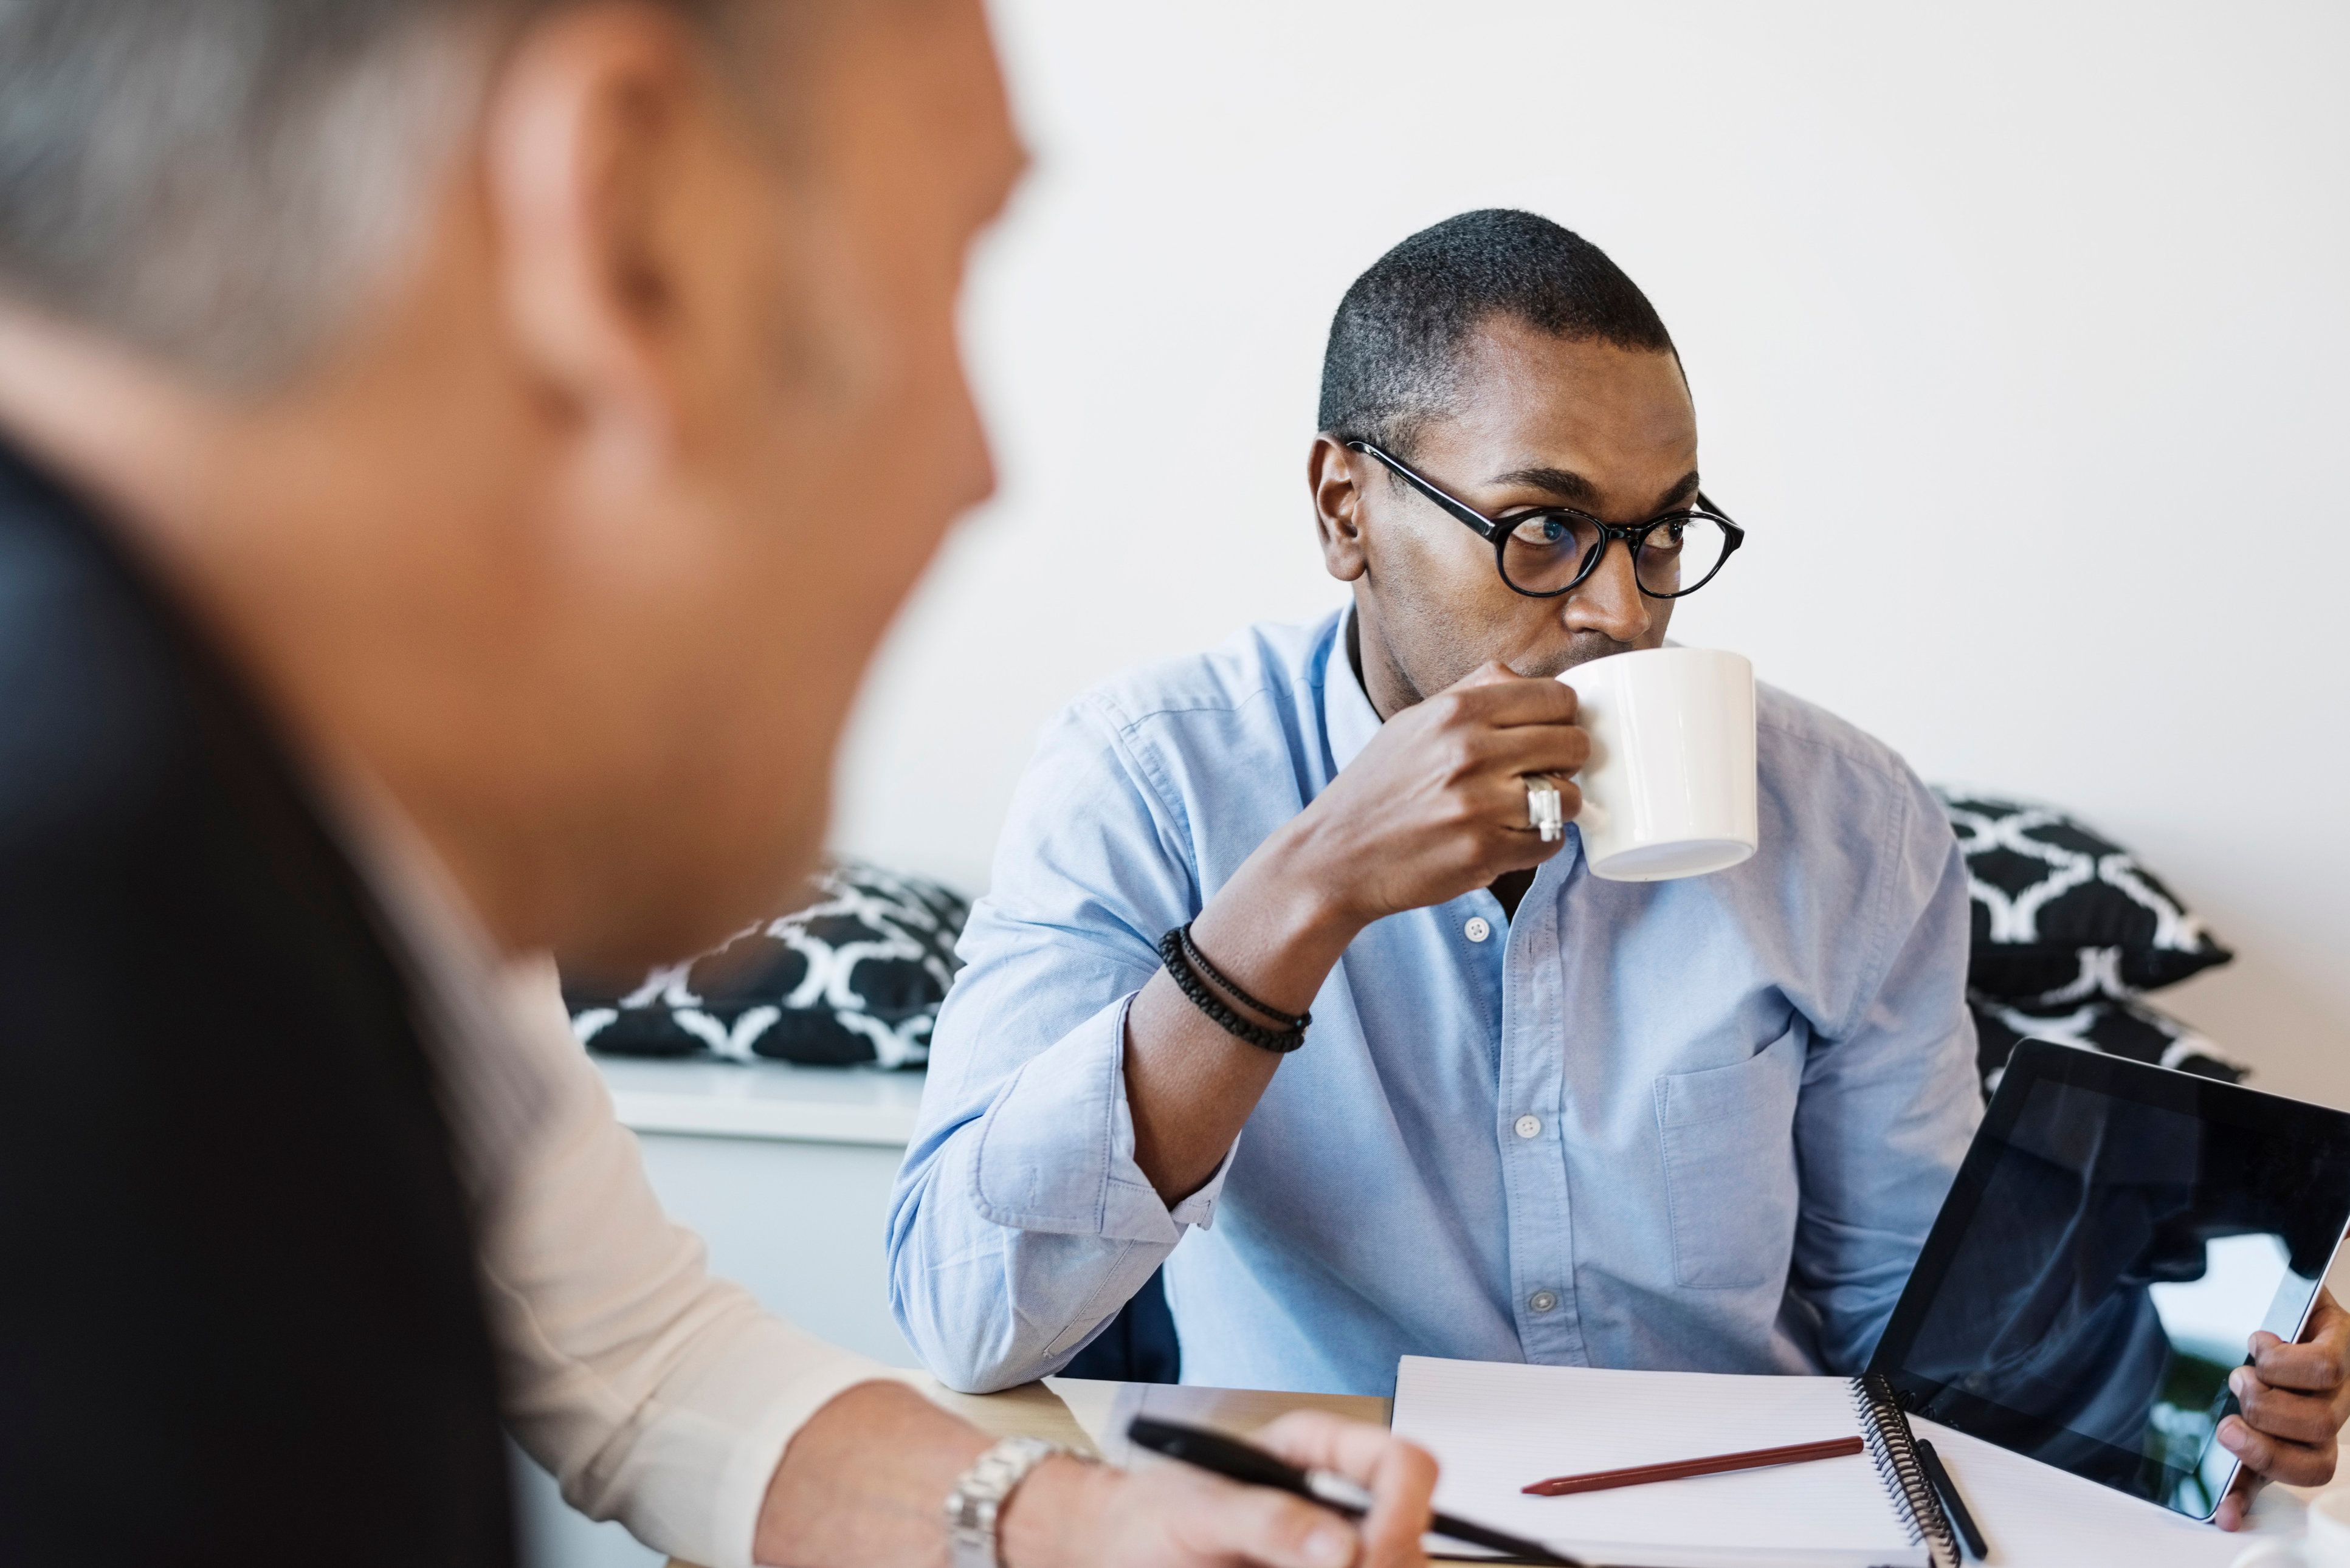 Businessman drinking coffee during meeting at office